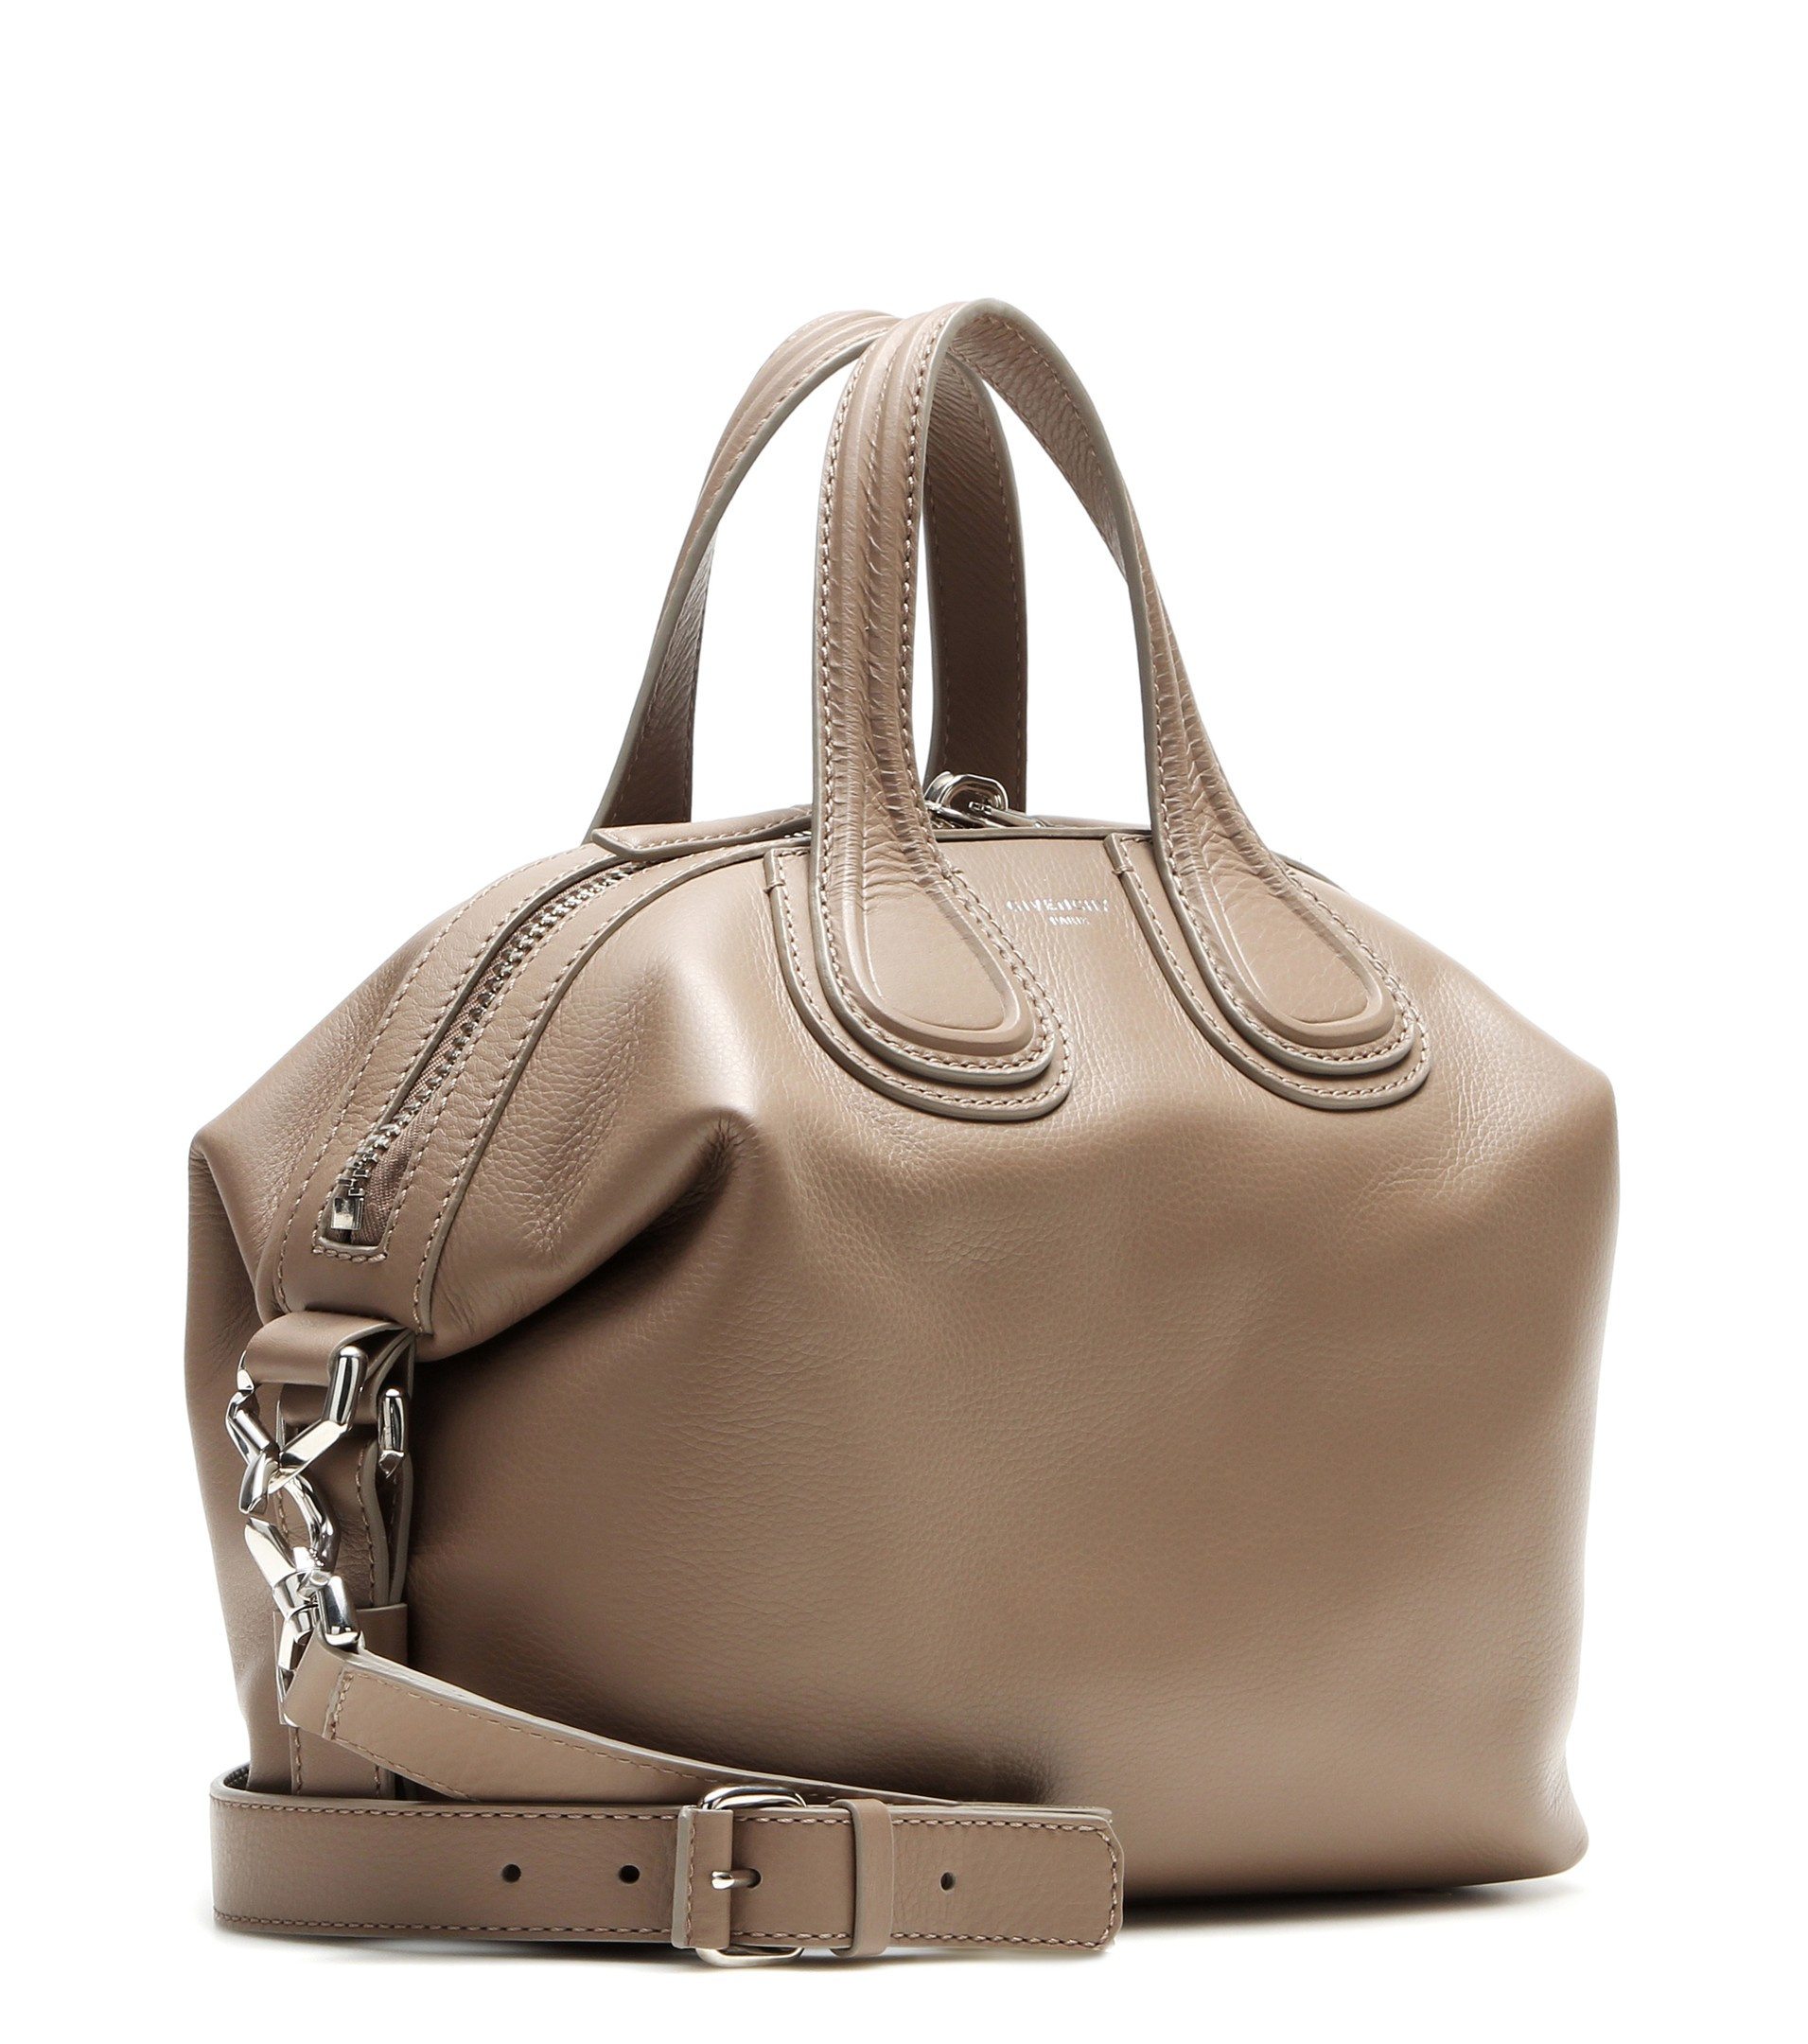 49279e32cb62 Givenchy Nightingale Small Leather Tote in Natural - Lyst